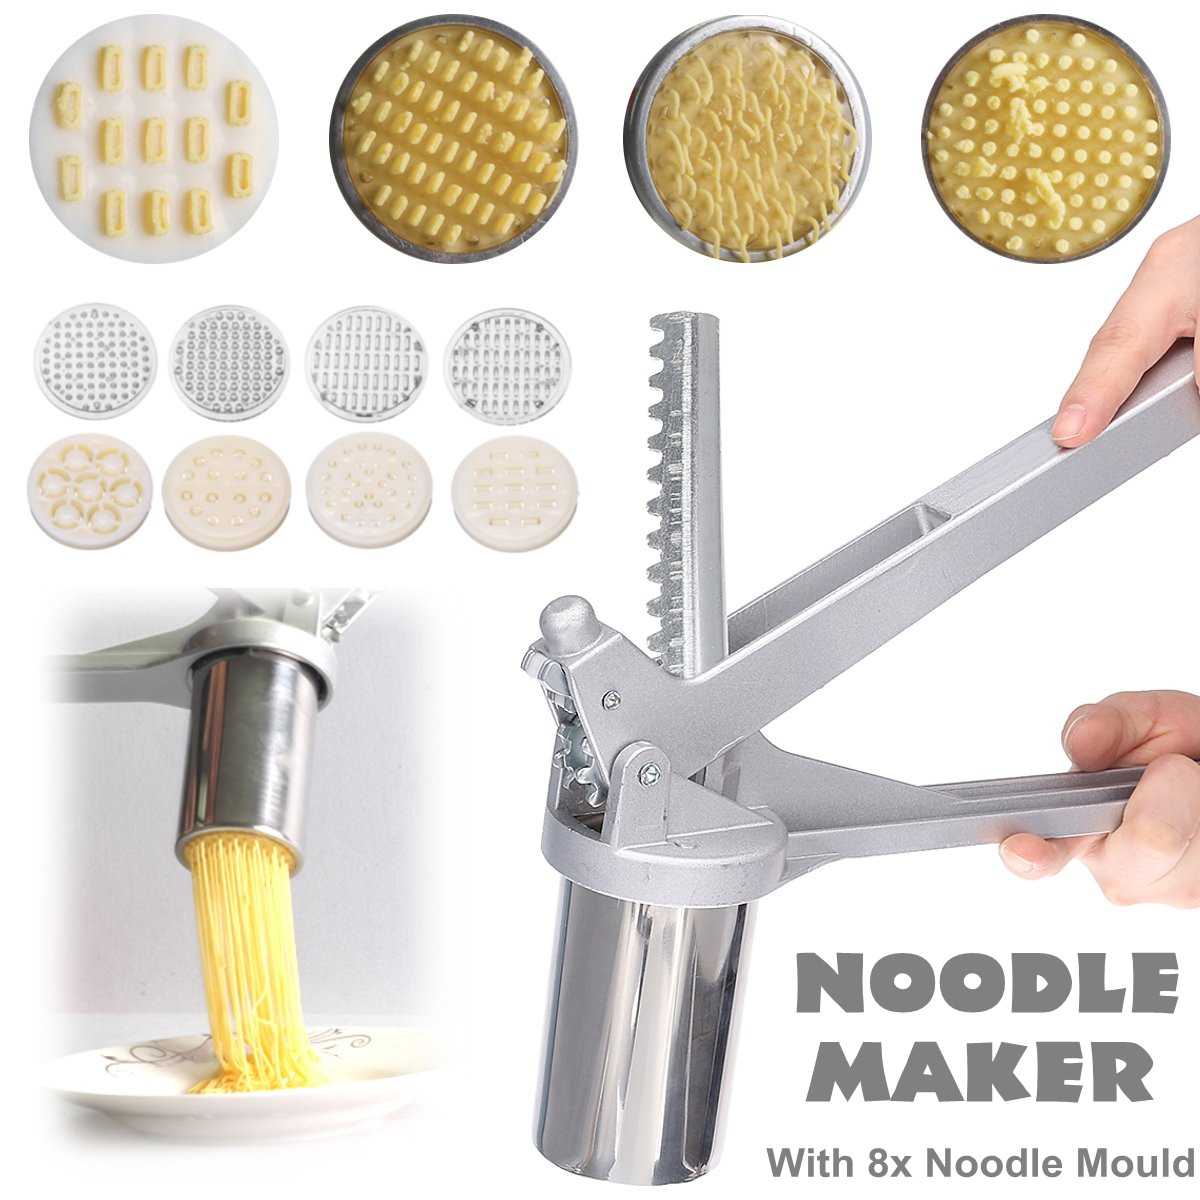 Stainless Steel Manual Noodle Maker Press Pasta Machine Crank Cutter Fruits Juicer Cookware With 8 Pressing Noodle Moulds Making image